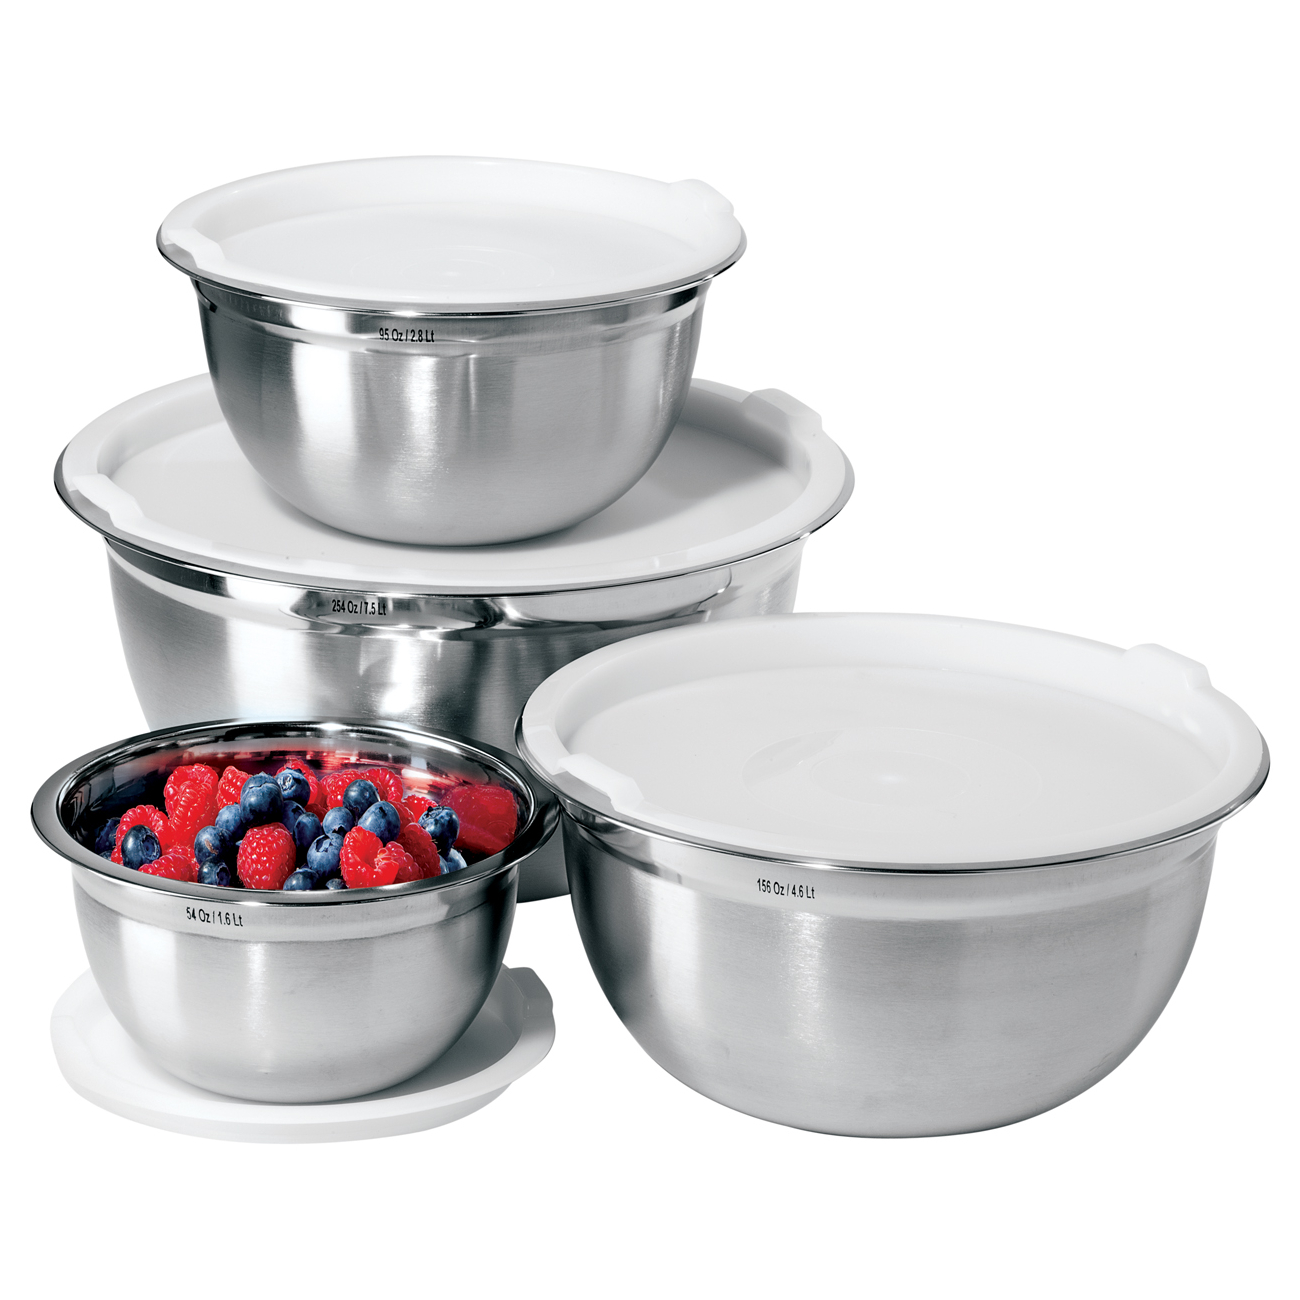 Oggi Stainless Steel 8 Piece Covered Mixing Bowl Set